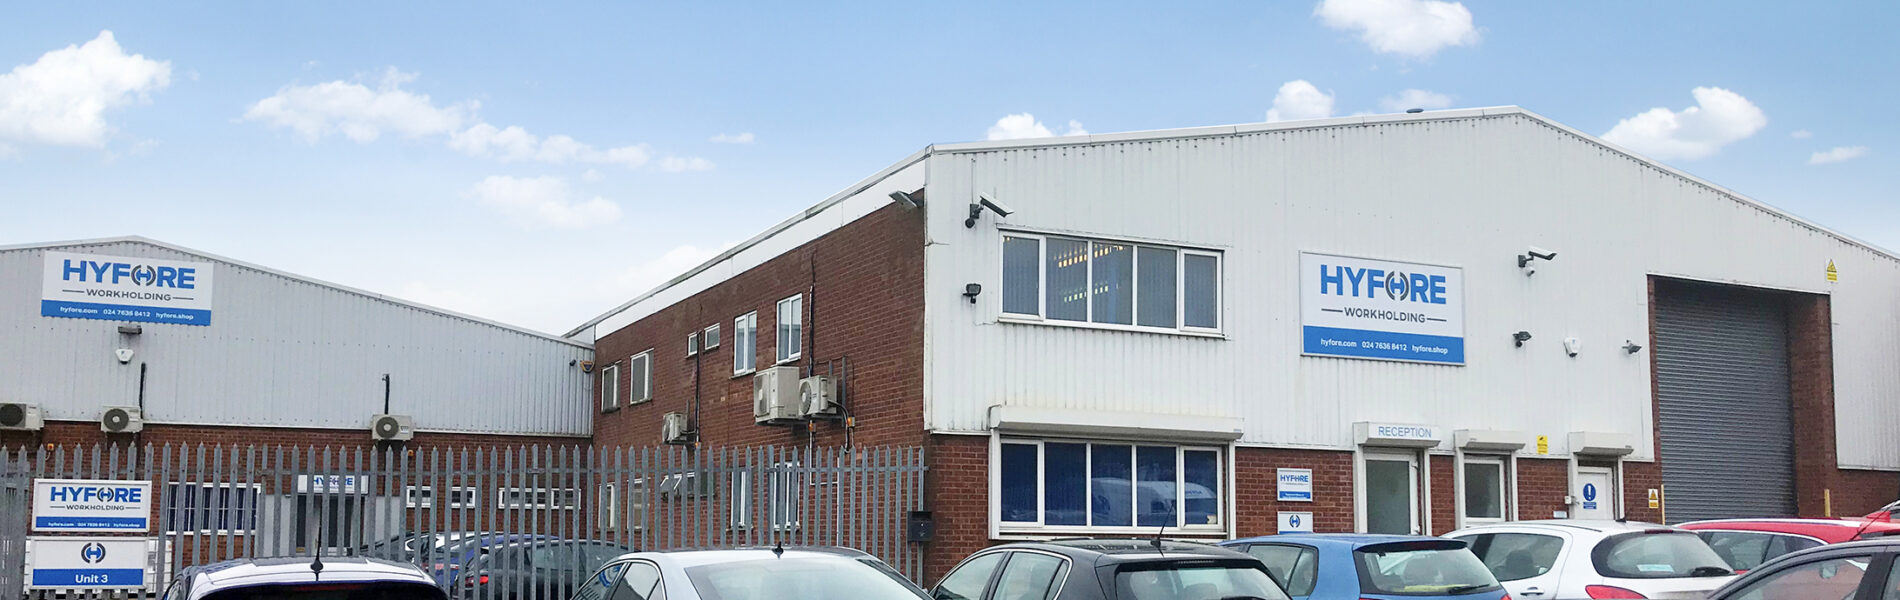 Headquarters of Hyfore, a UK-based supplier of cnc workholding solutions